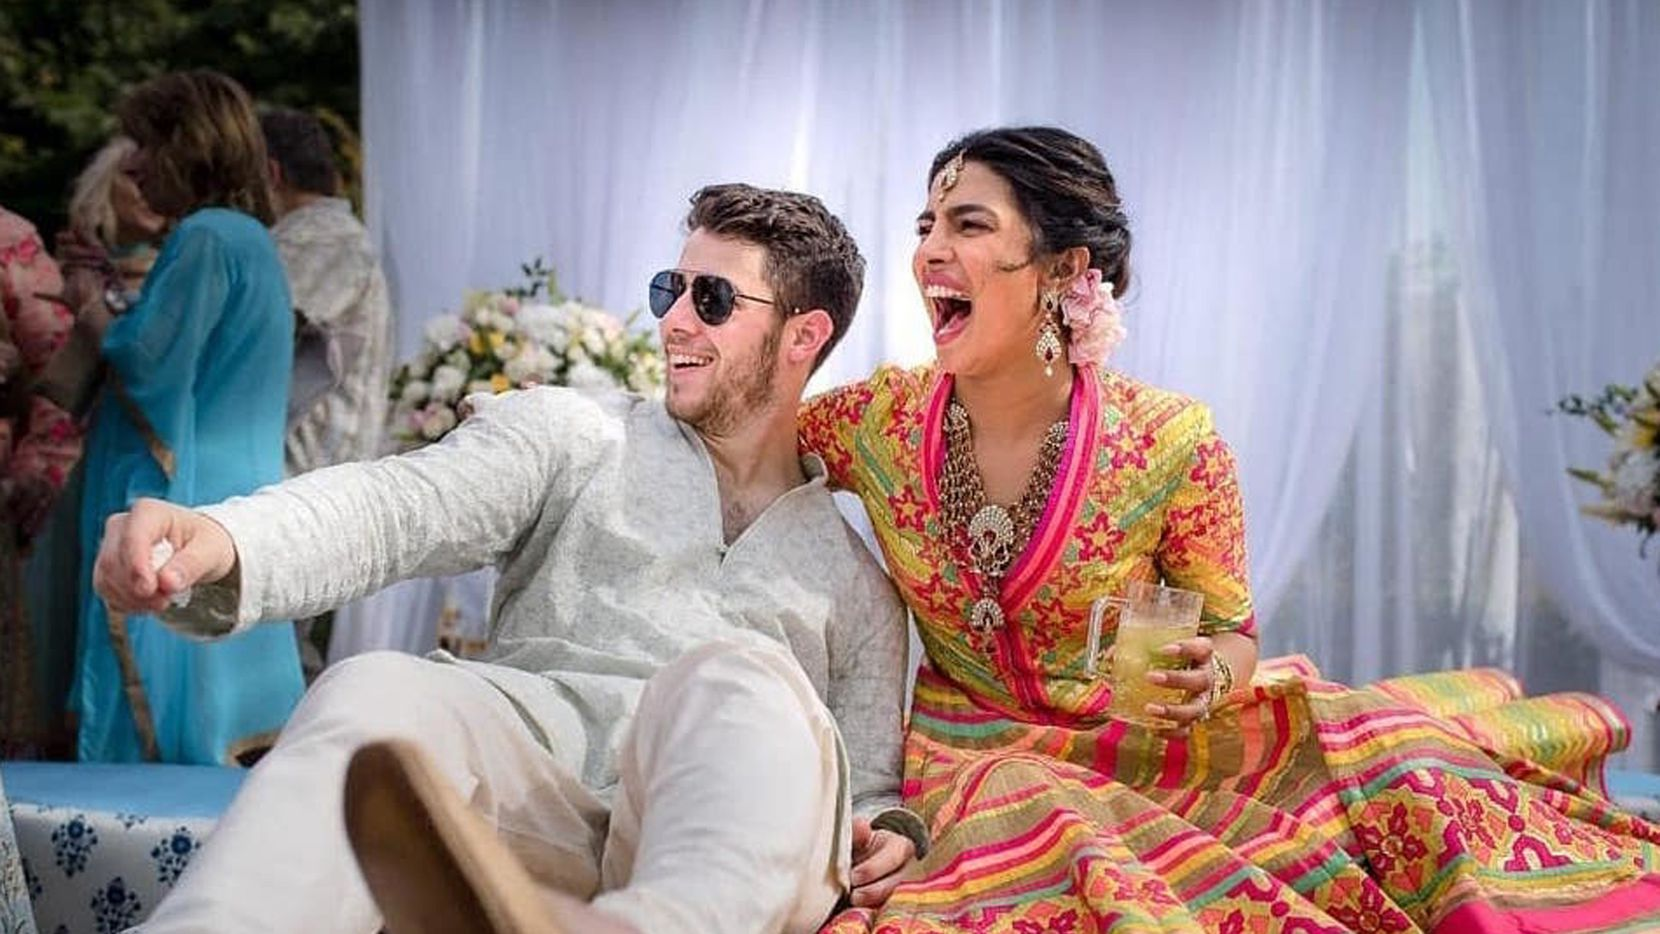 In this handout photo released by Raindrop Media, Bollywood actress Priyanka Chopra and Nick Jonas celebrate during a mehendi ceremony at Umaid Bhawan in Jodhpur, India.